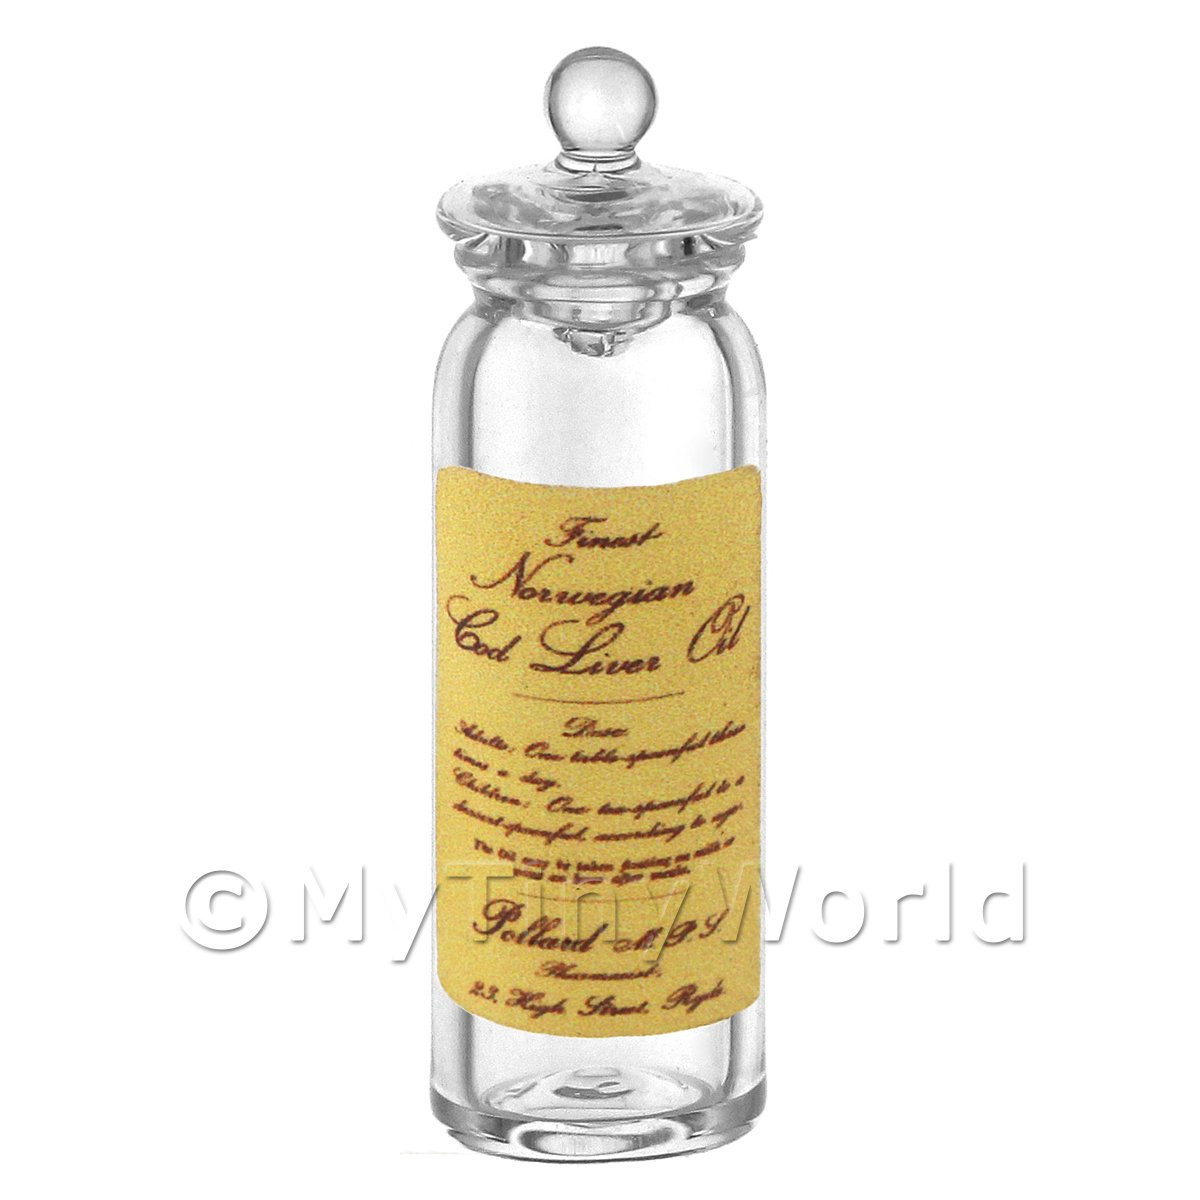 Dolls House Miniature Norwegian Cod Liver Oil Glass Apothecary Storage Jar